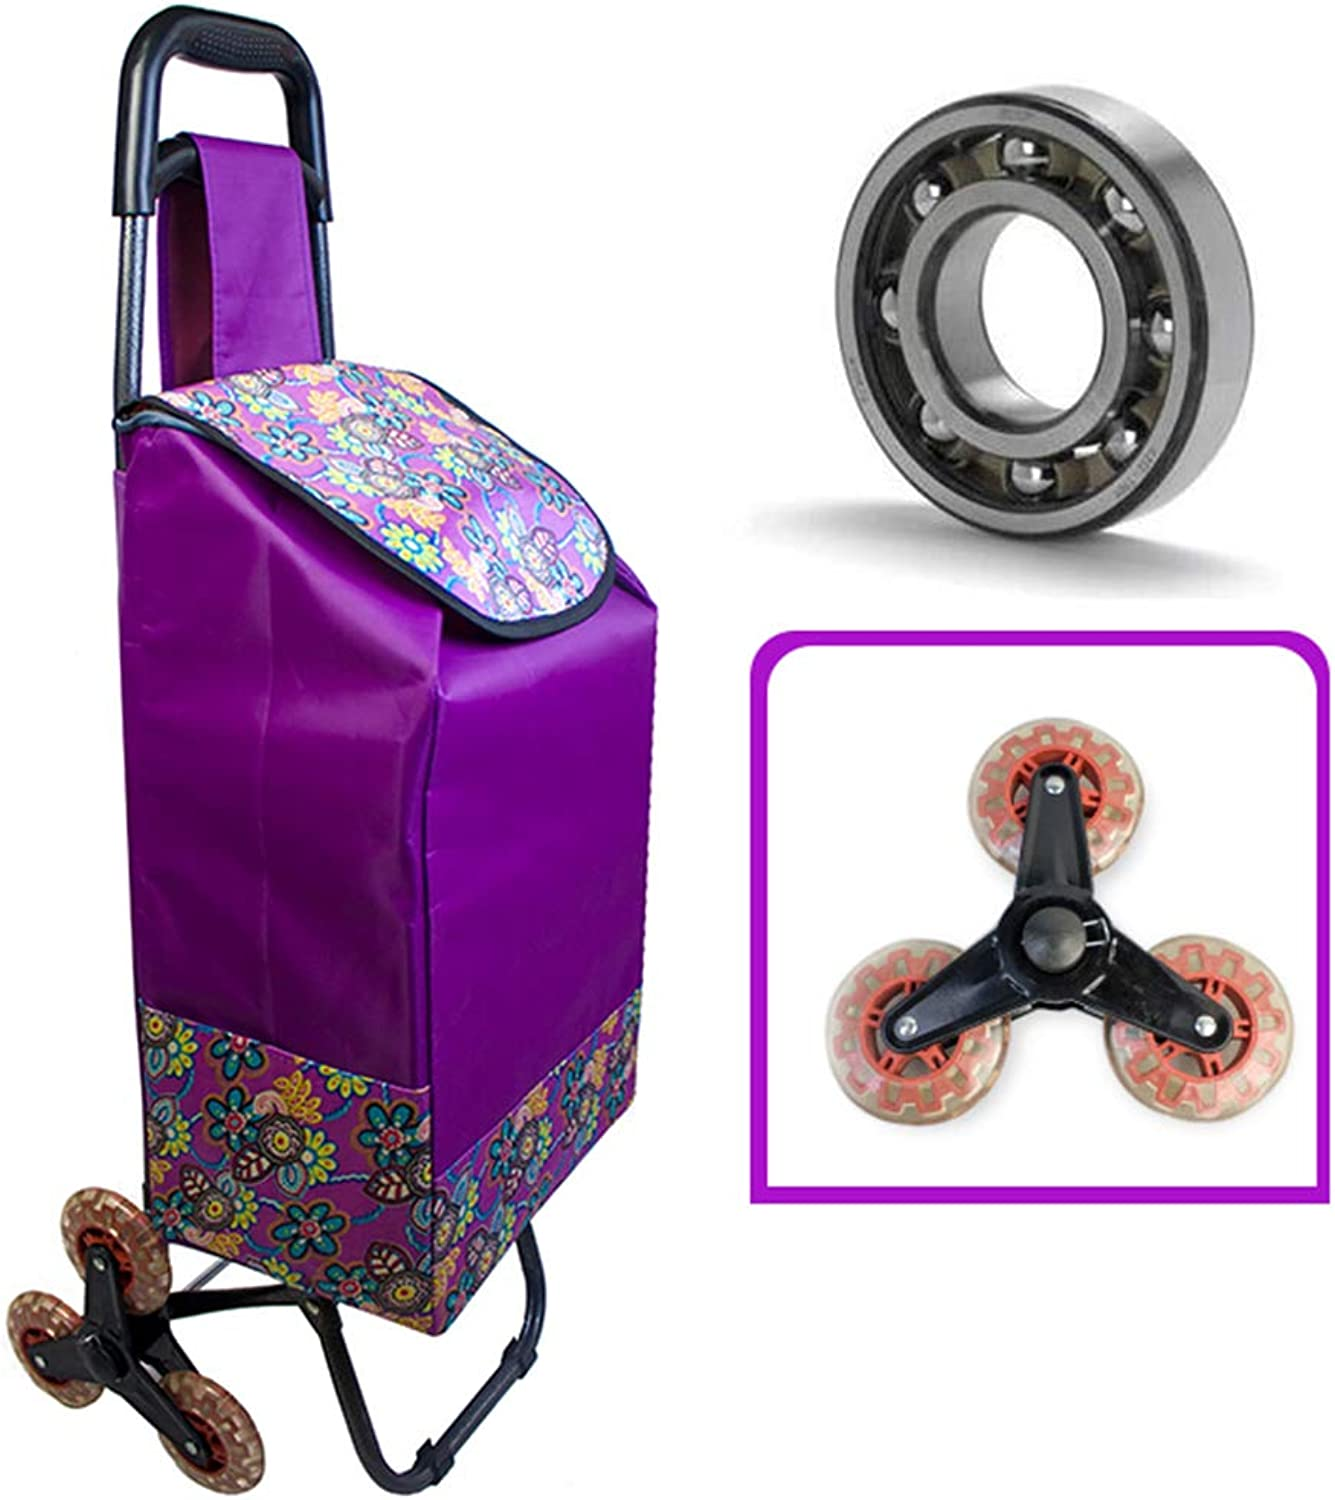 Lightweight Folding Shopping Trolley 6 Wheels, Groceries Climbing Stairs Practical Market Cart, Solid and Easy to Storage